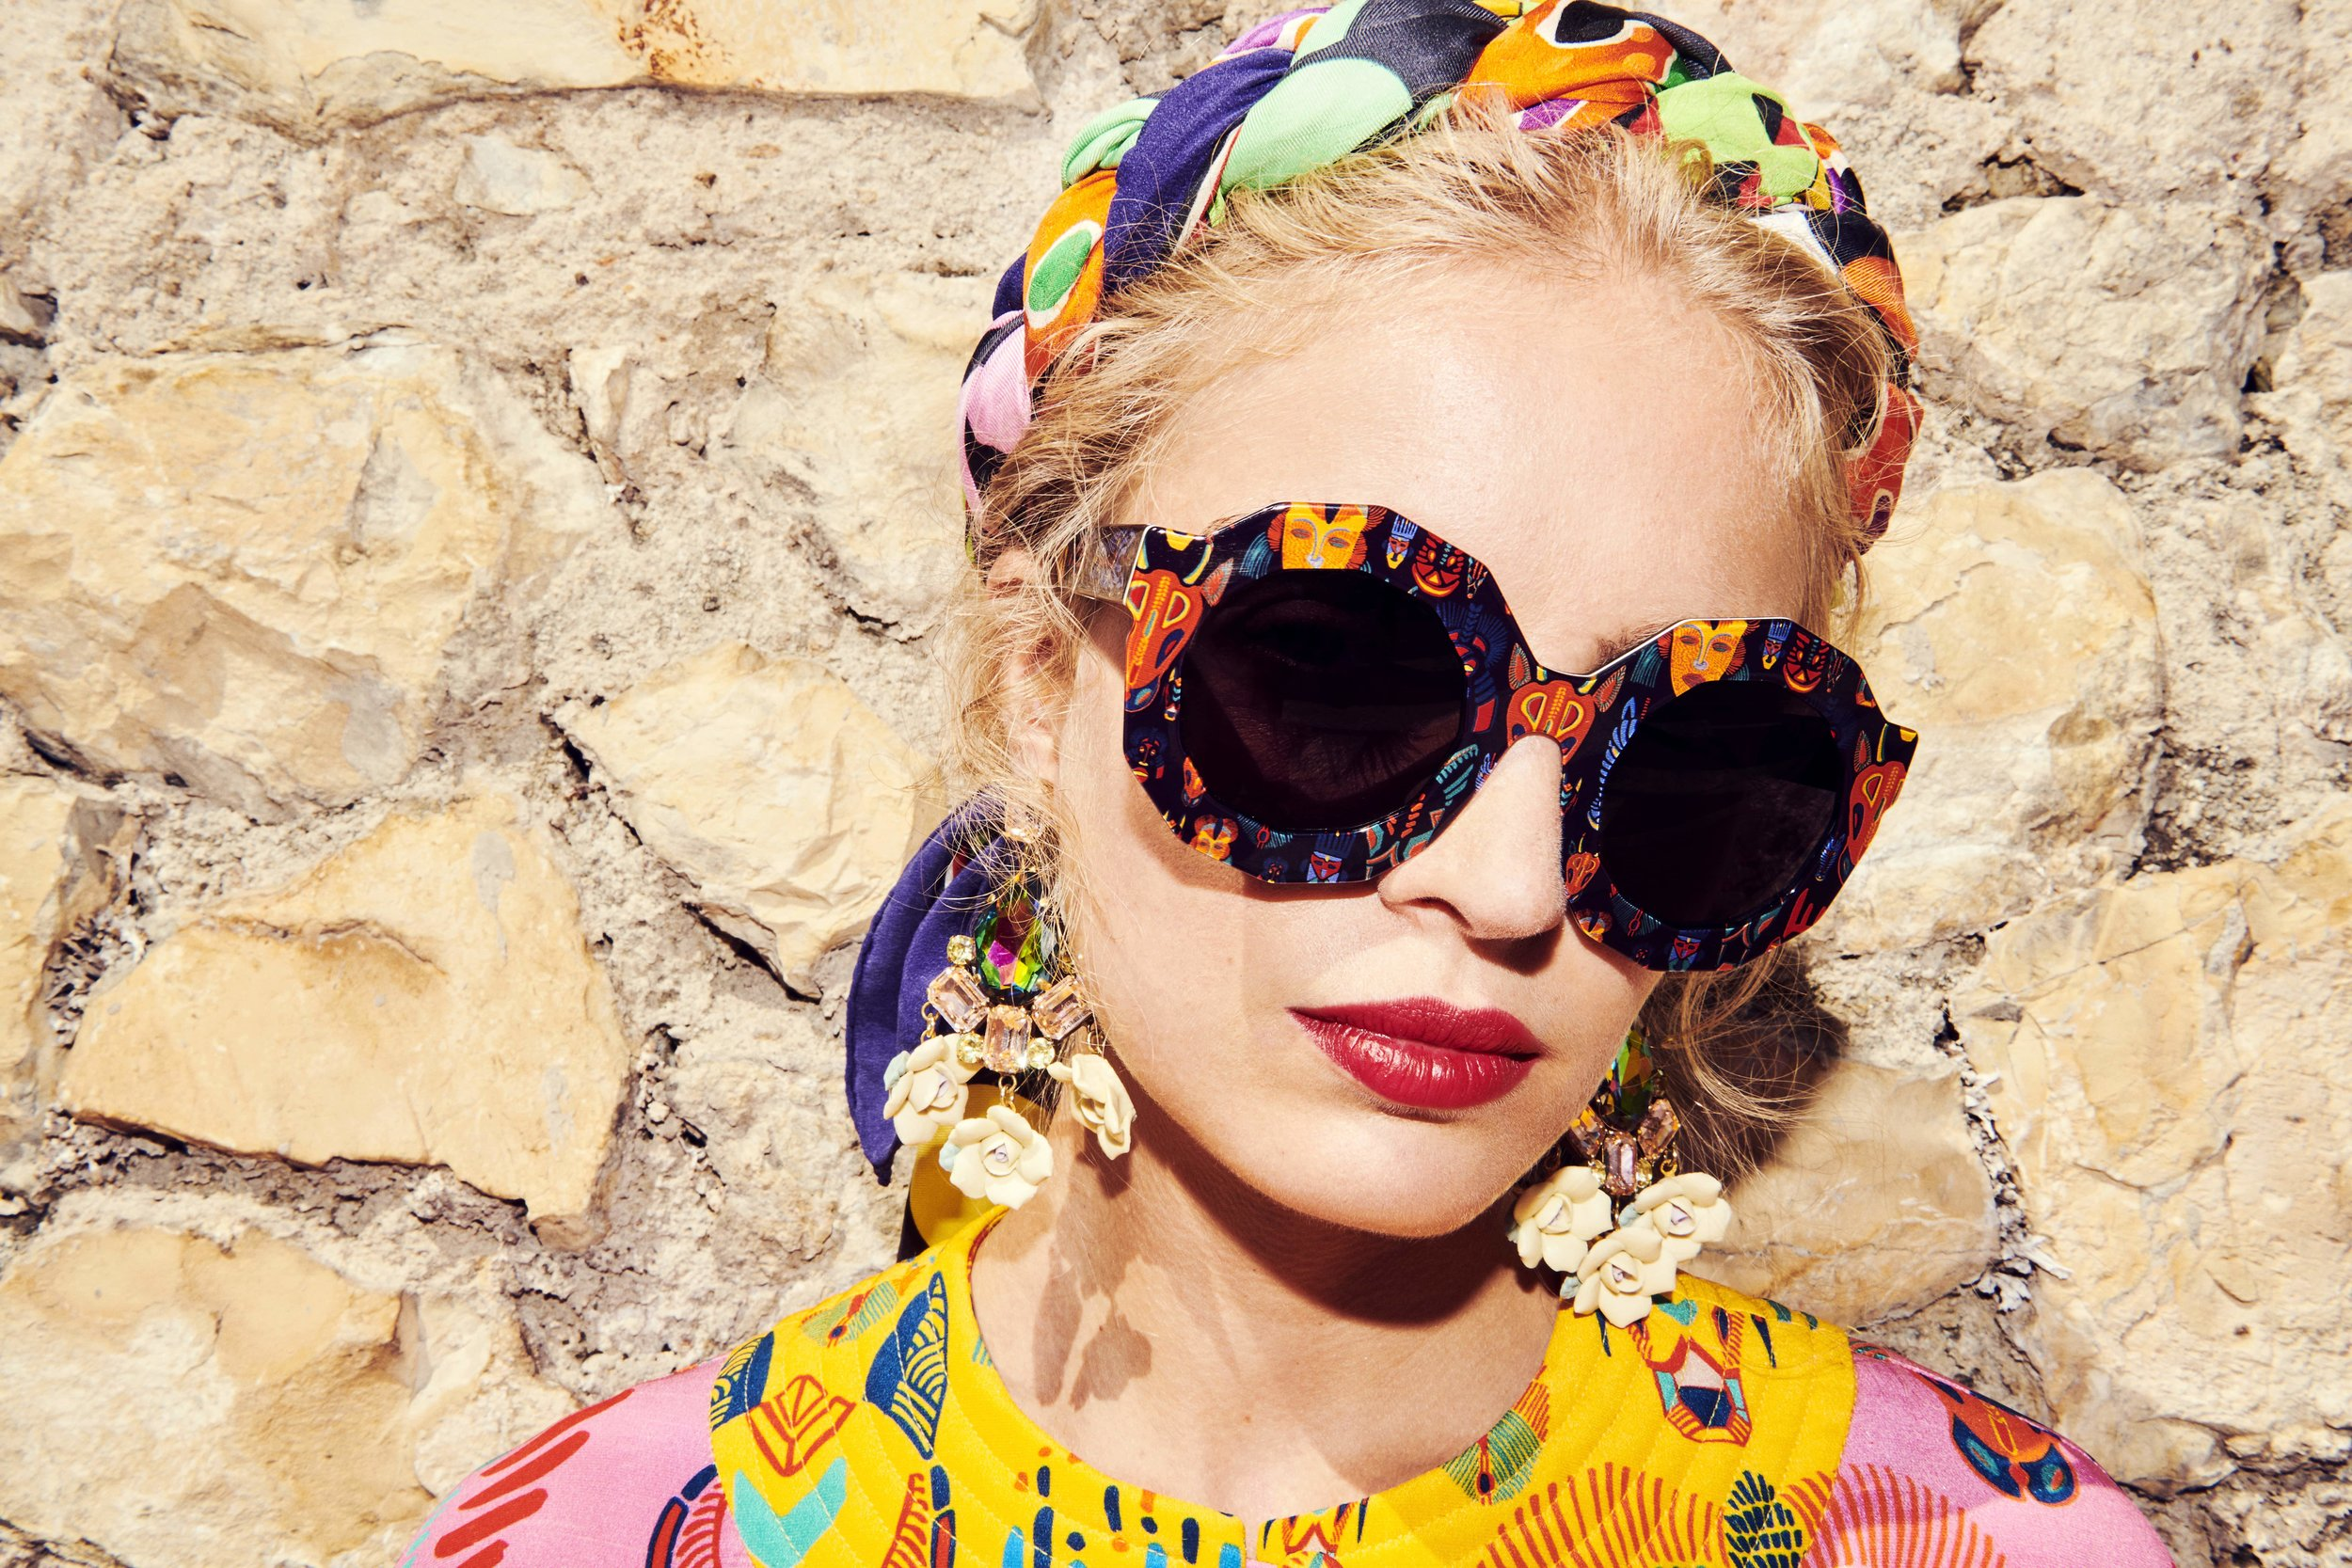 ANDY WOLF EYEWEAR is launching this spring a sunglasses capsule collection with fashion label RIANNA+NINA known for its vibrant colors and prints.